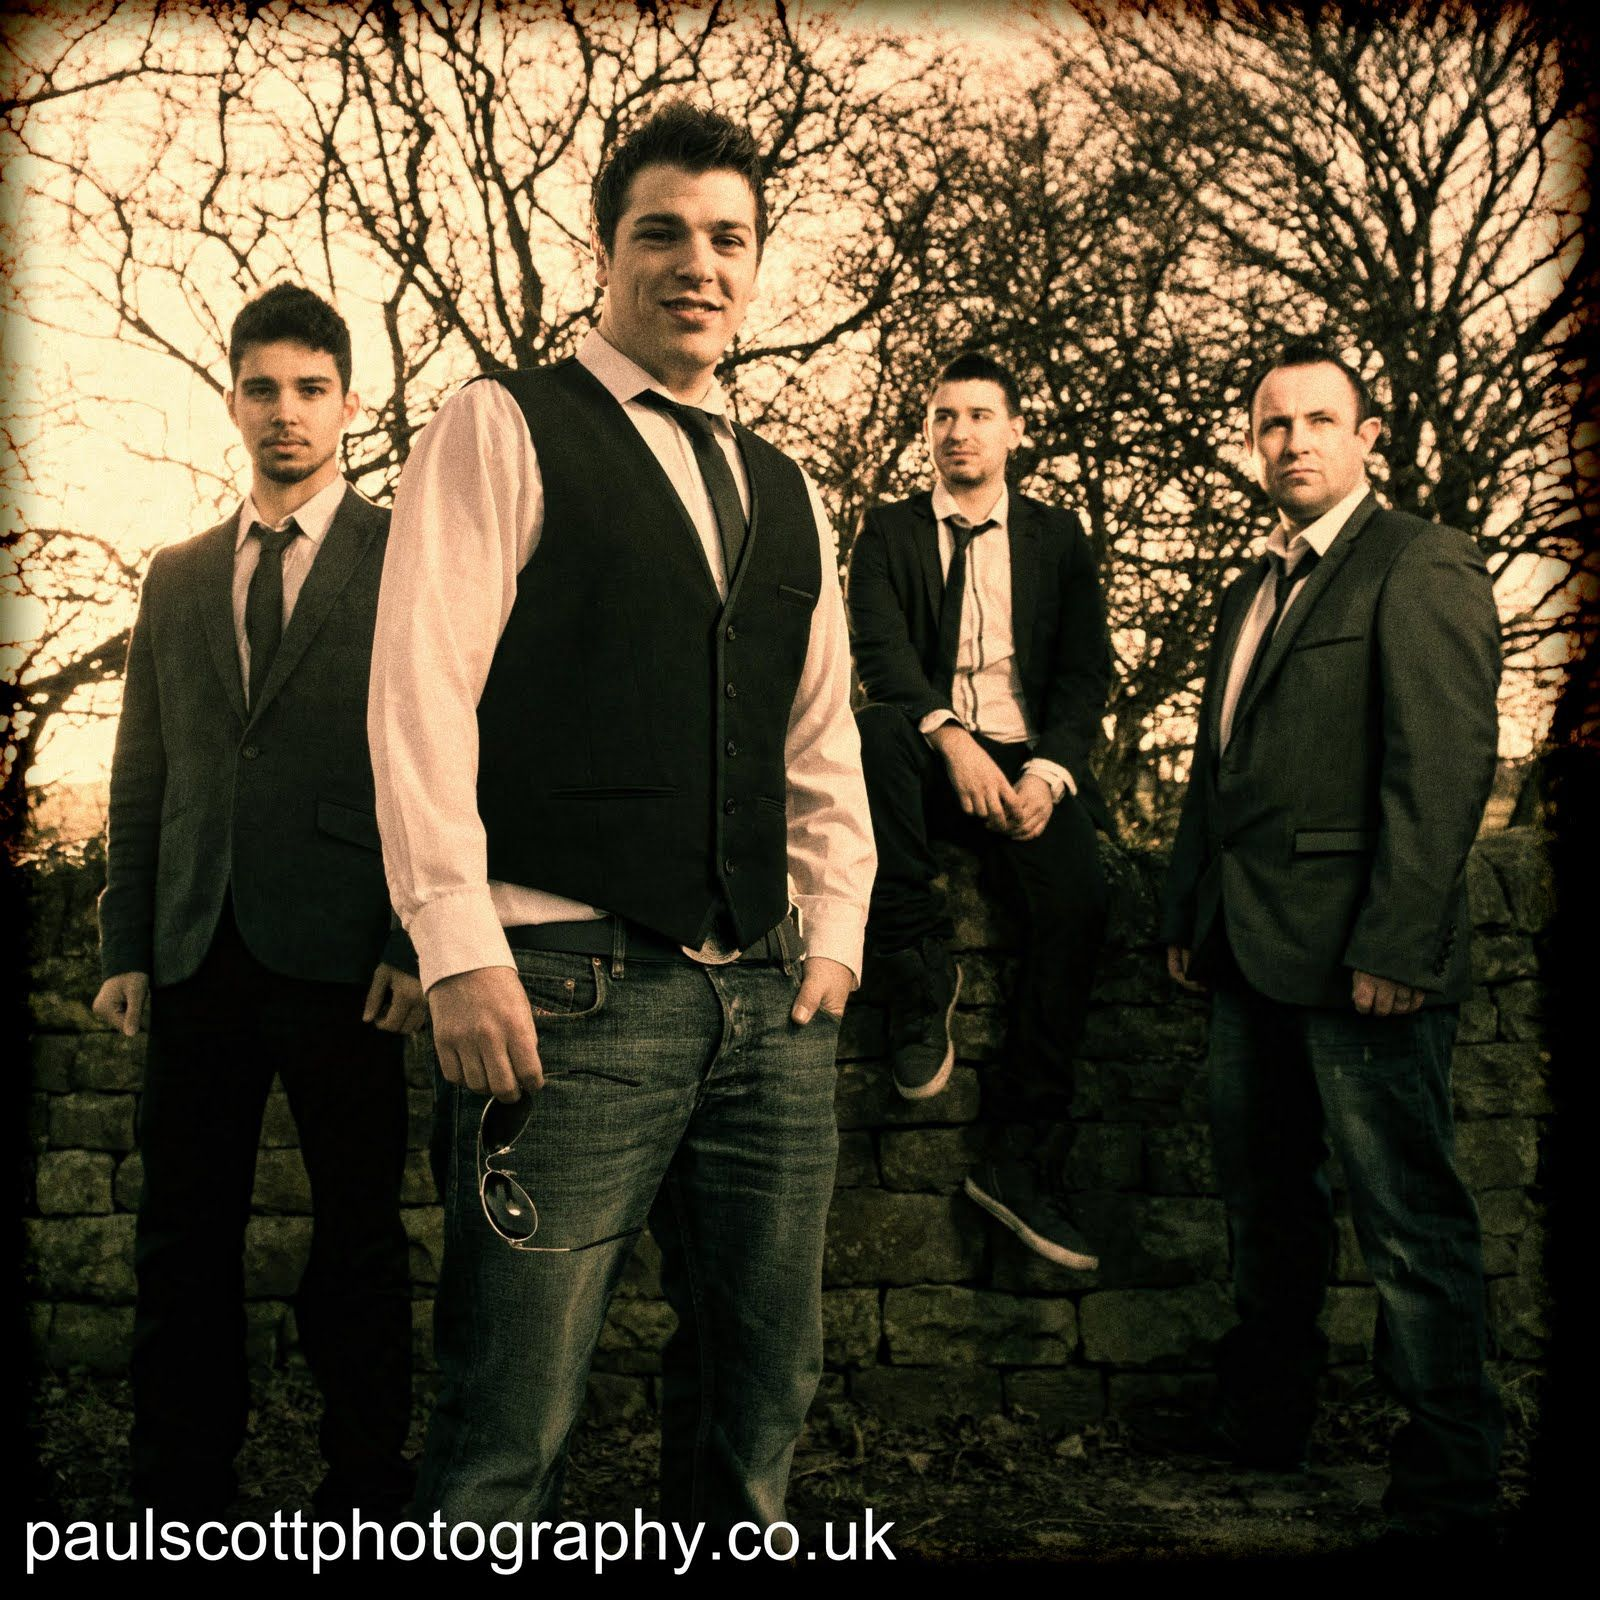 Paul Scott Photography: Resevoir Band Shoot